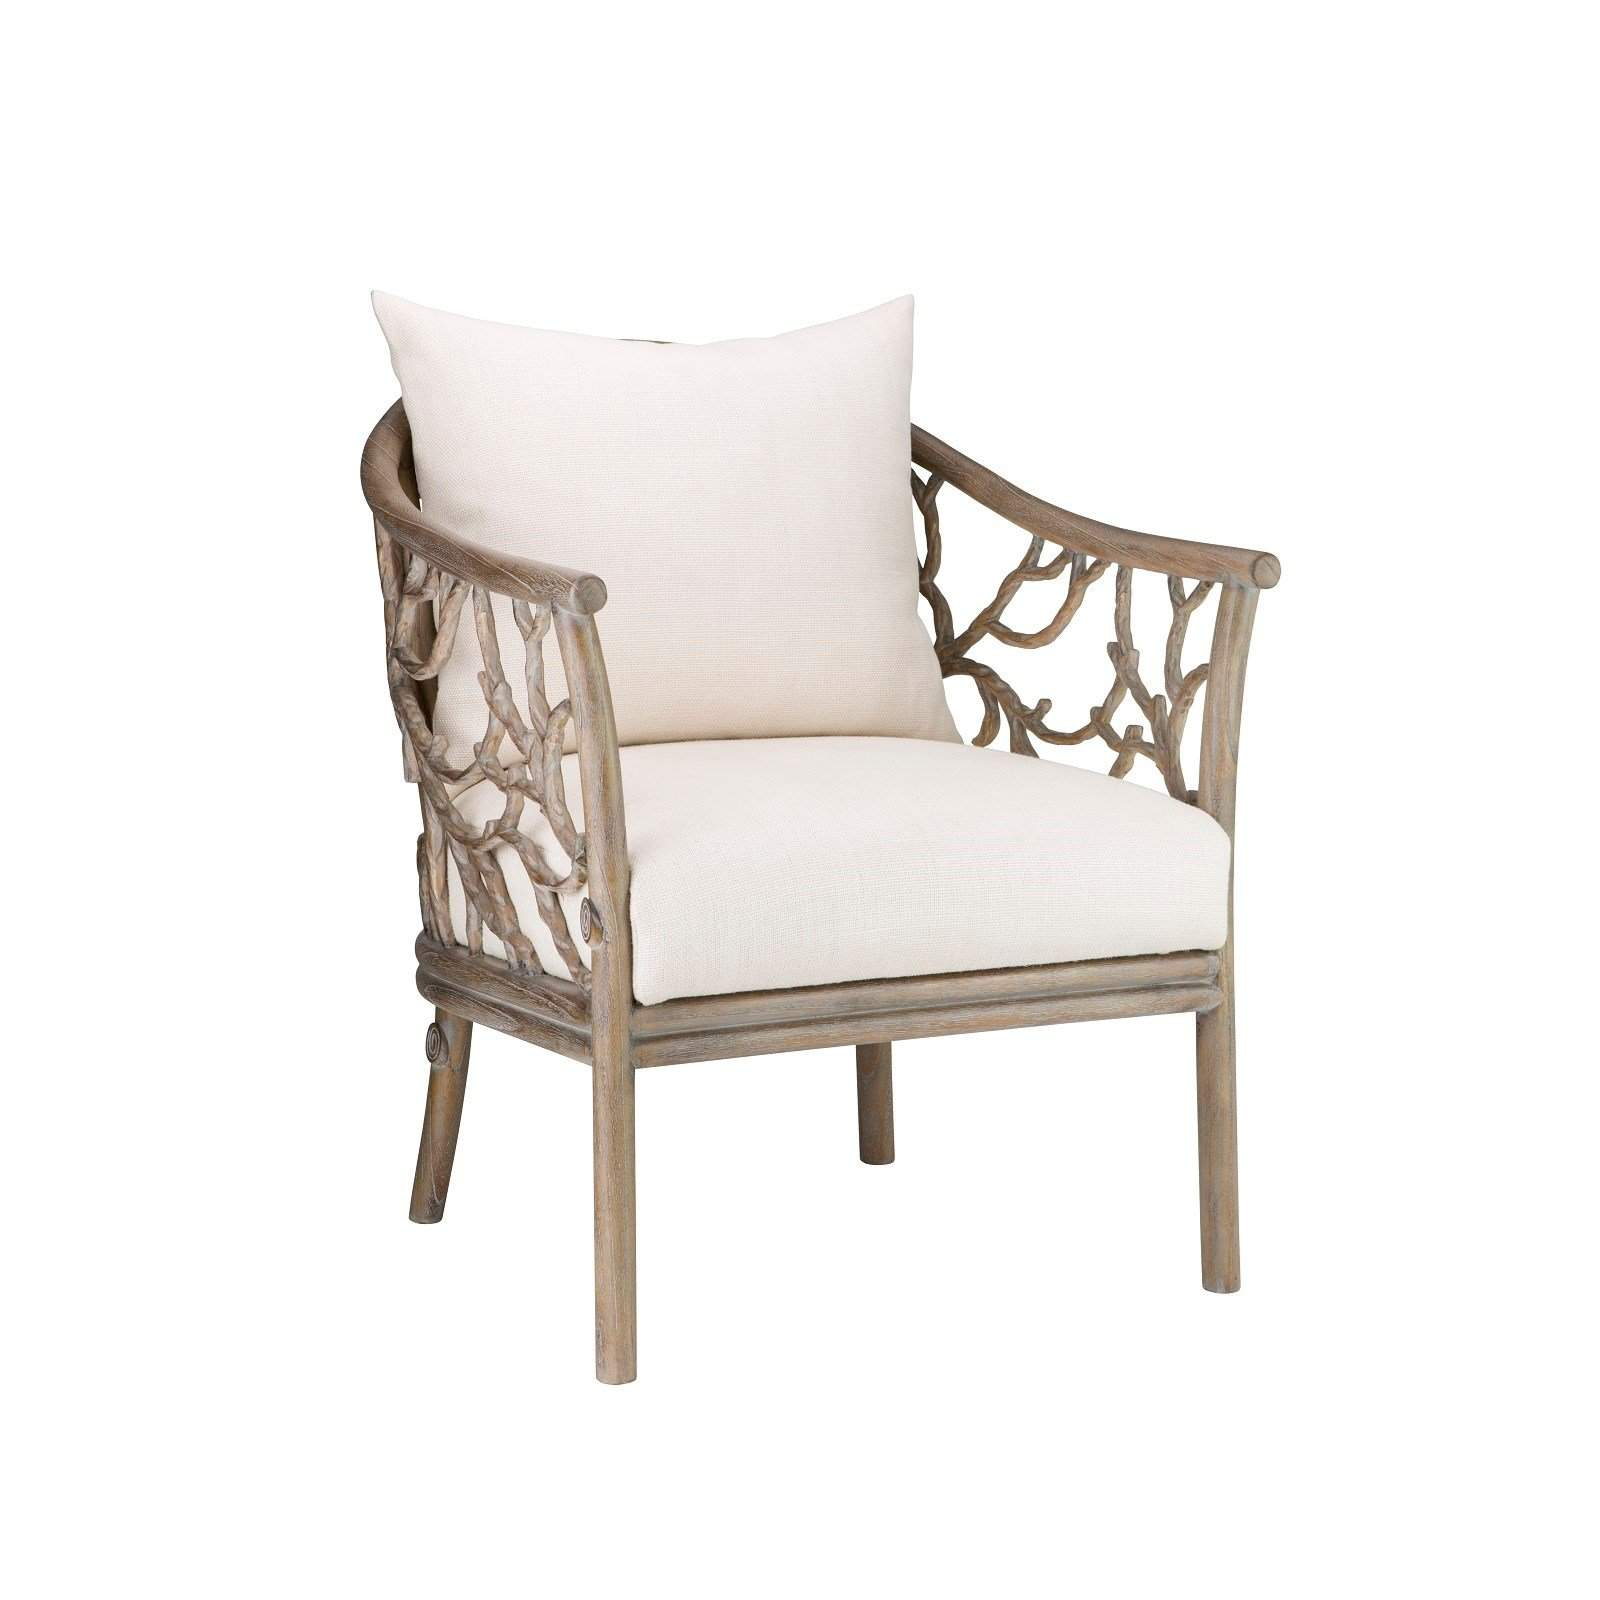 Bungalow 5 - BOSCO ARMCHAIR in DRIFTWOOD-Bungalow 5-Blue Hand Home